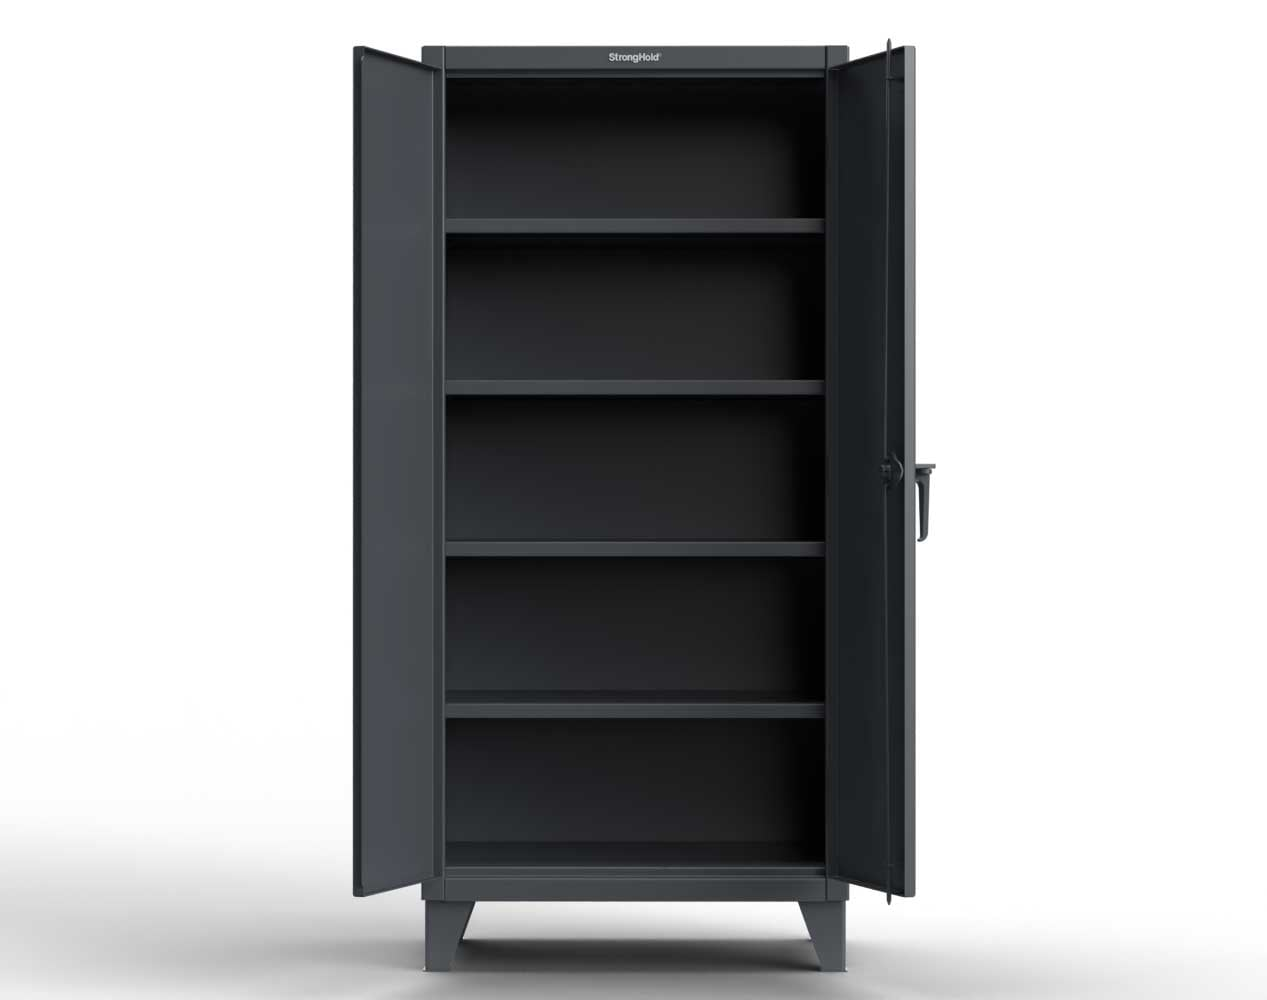 Extreme Duty 12 GA Cabinet with 3 Deep Shelves – 36 In. W x 30 In. D x 66 In. H